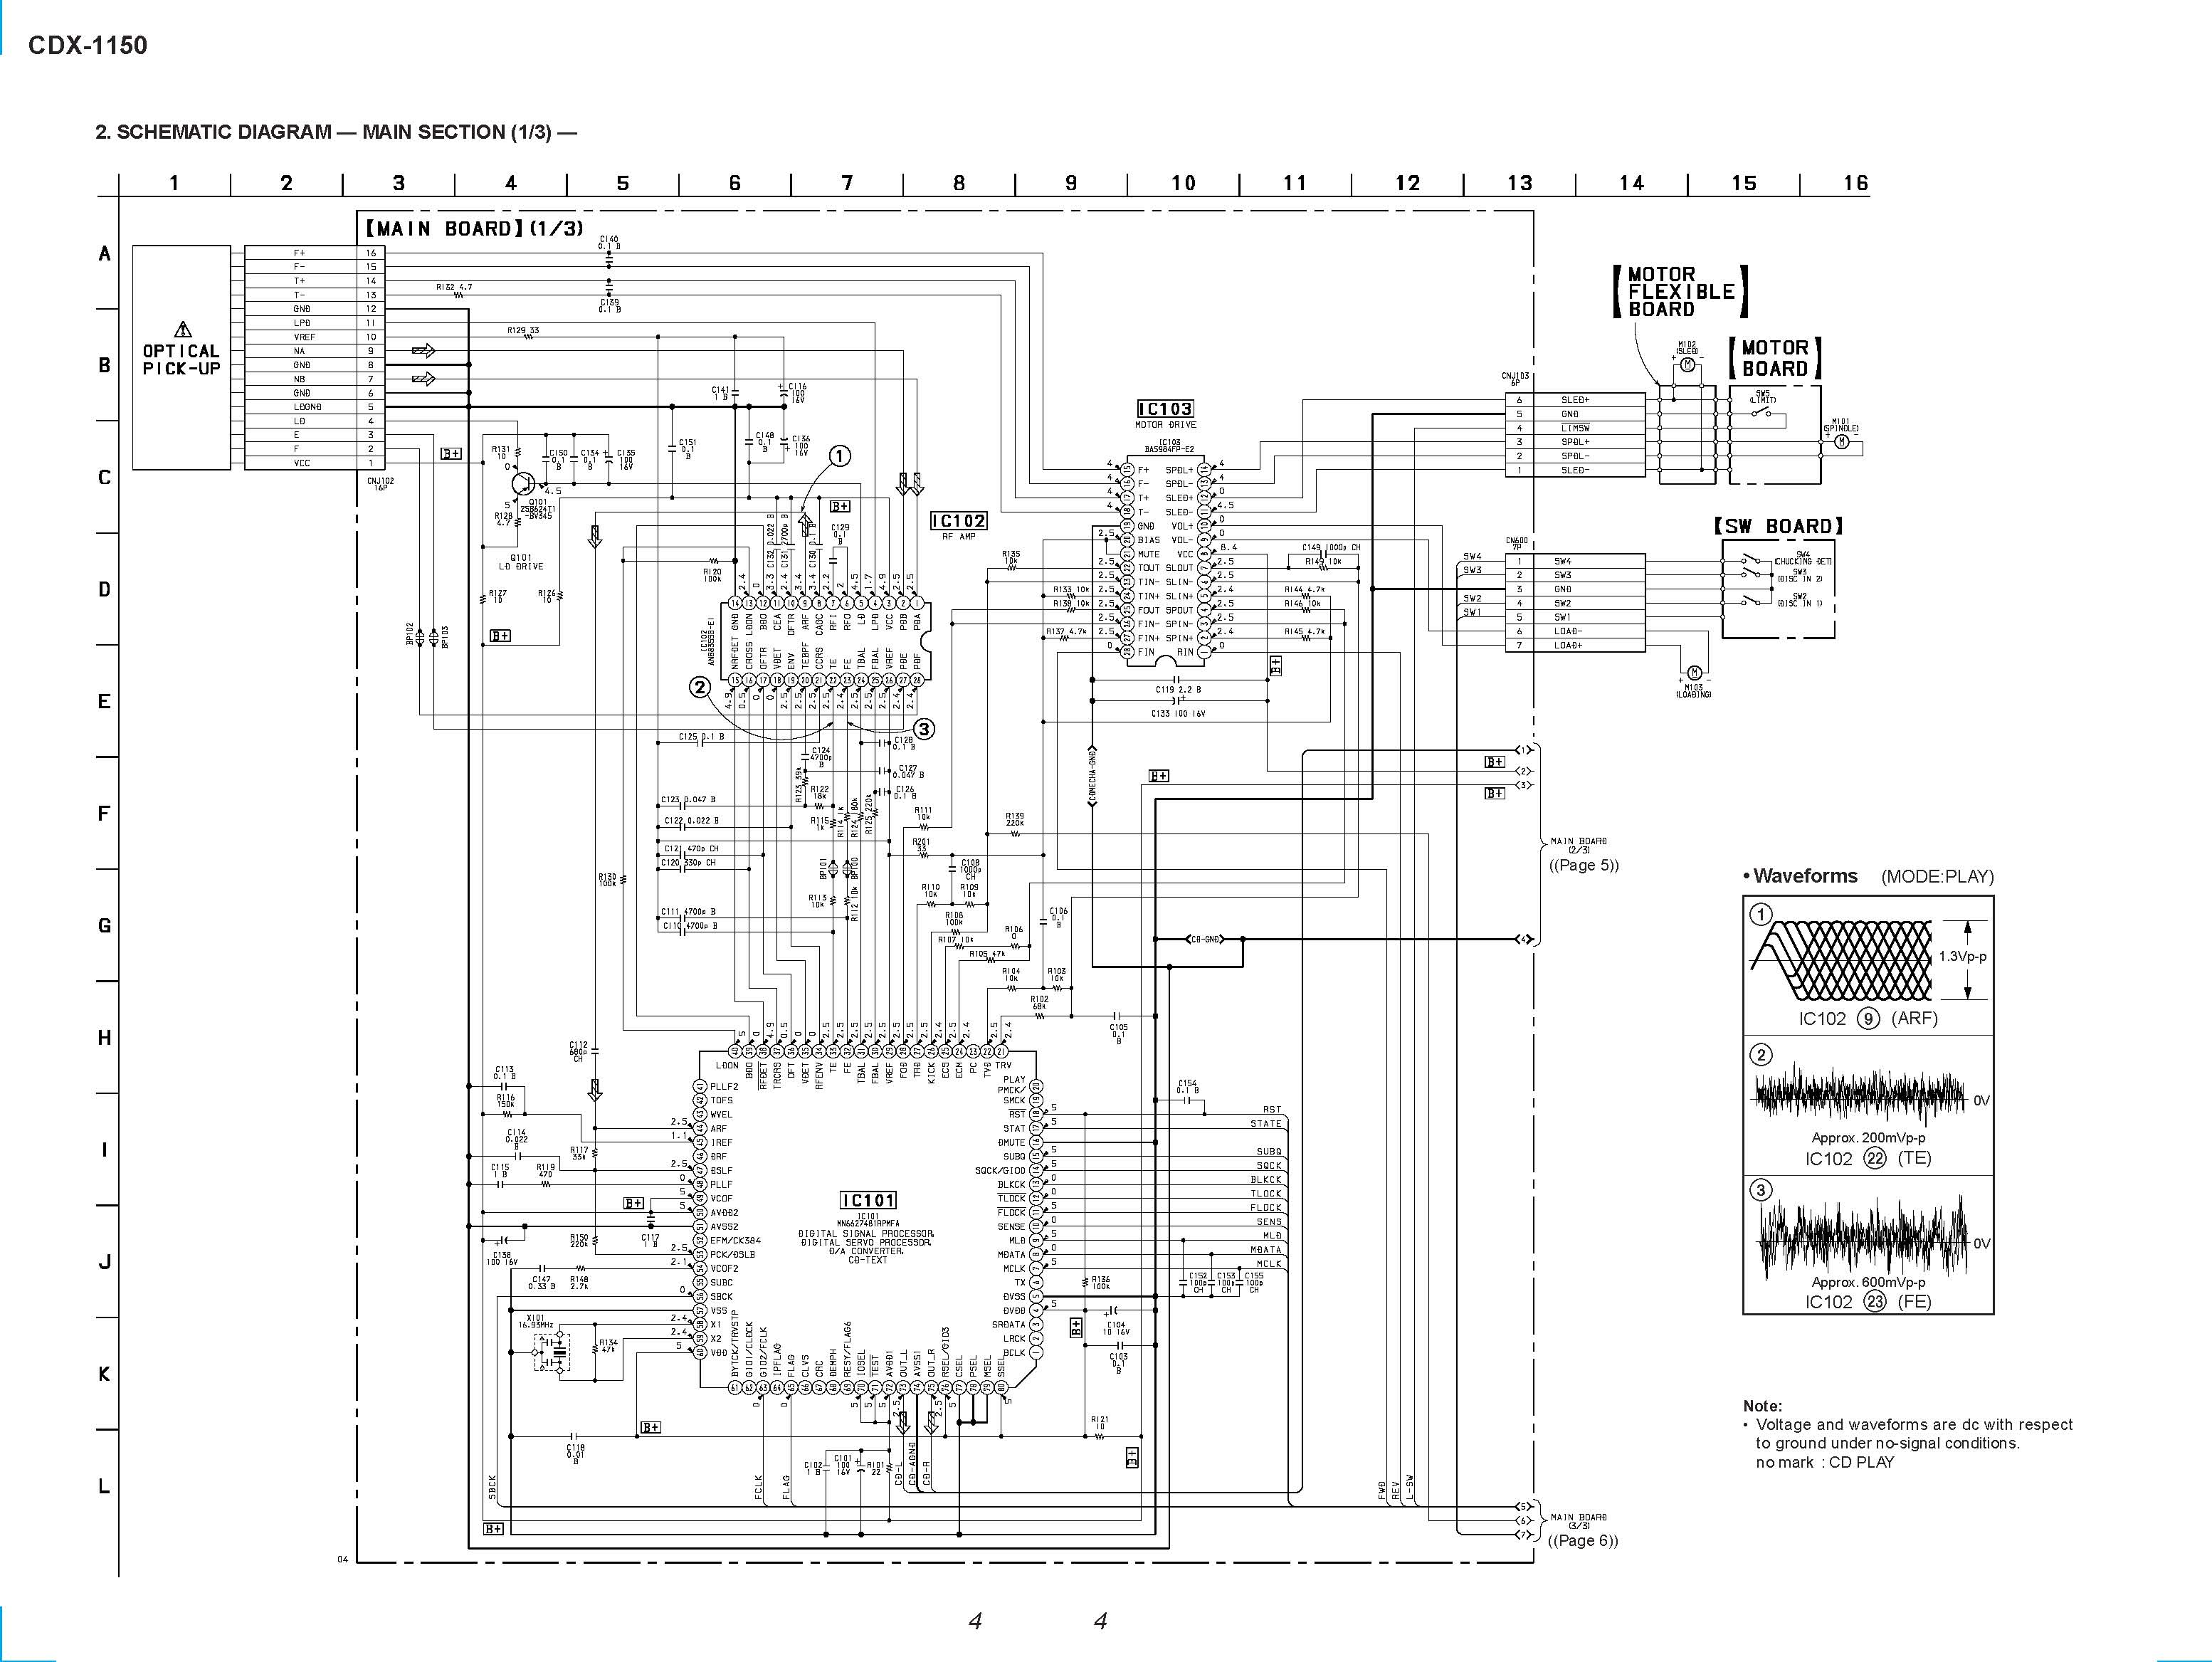 Sony CDX-1150 Schematic Diagram (Main / Front) in PDF